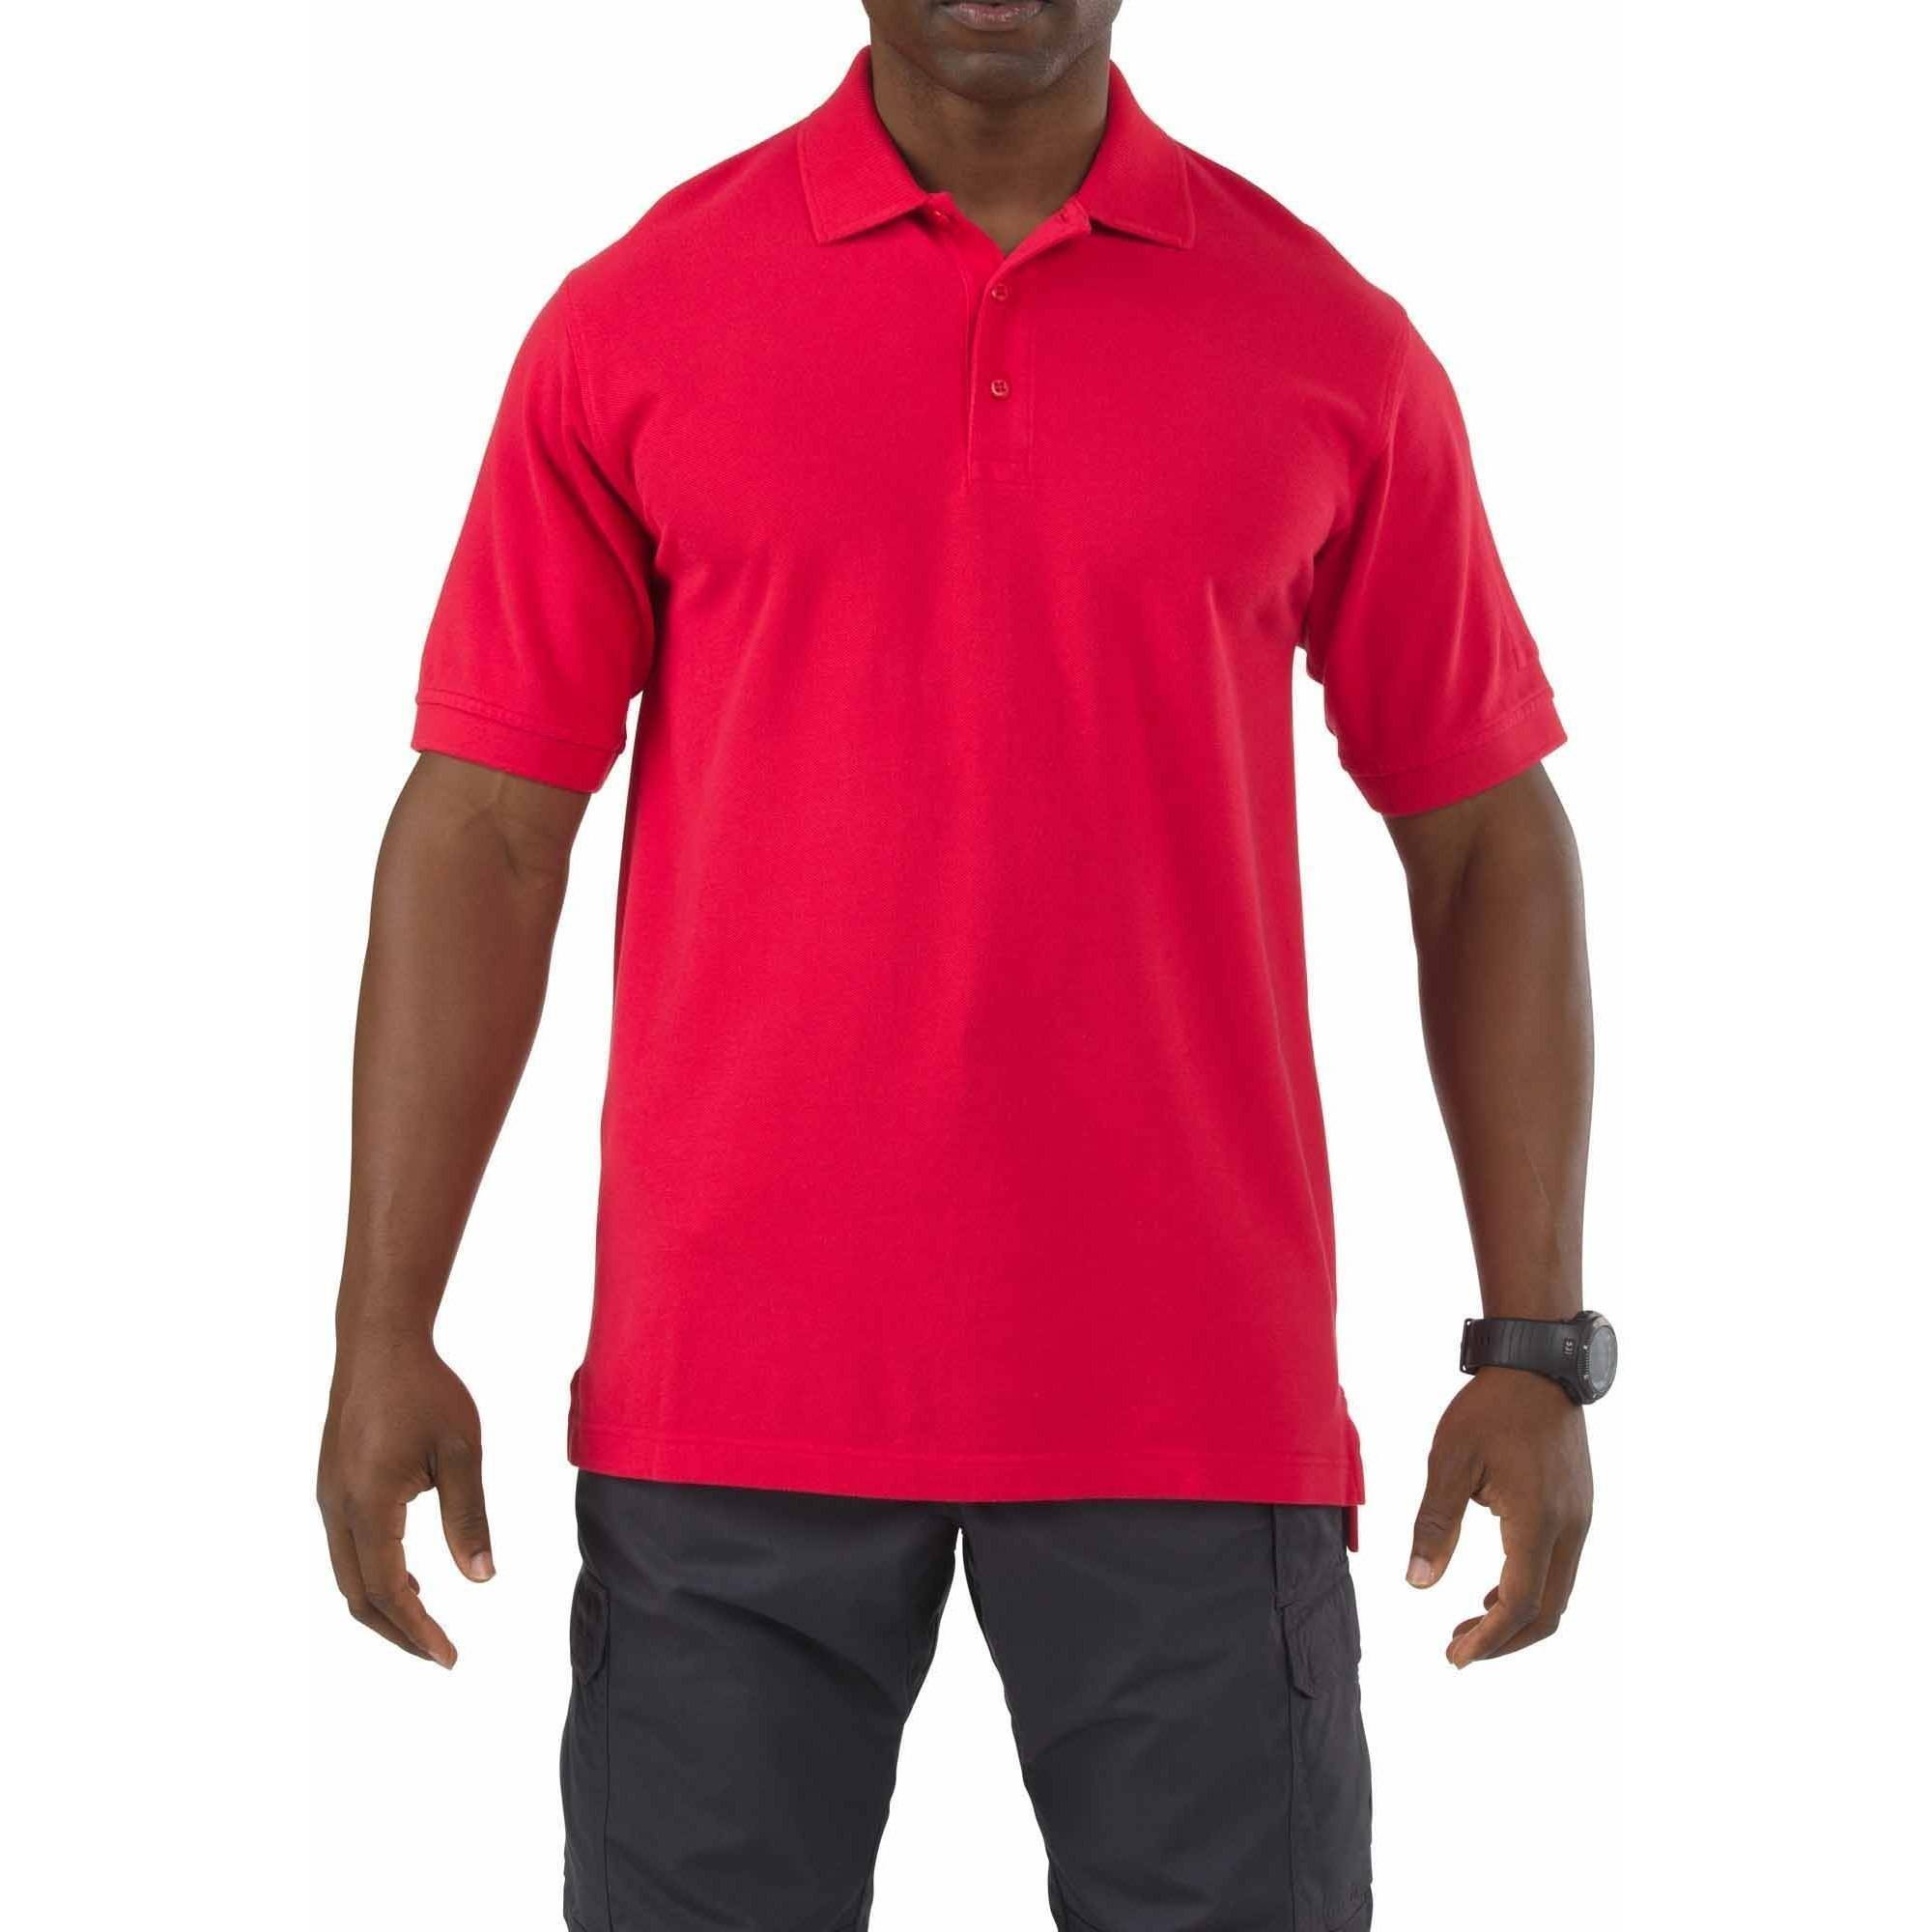 5.11 Tactical Short Sleeve Professional Polo Shirt, Range Red